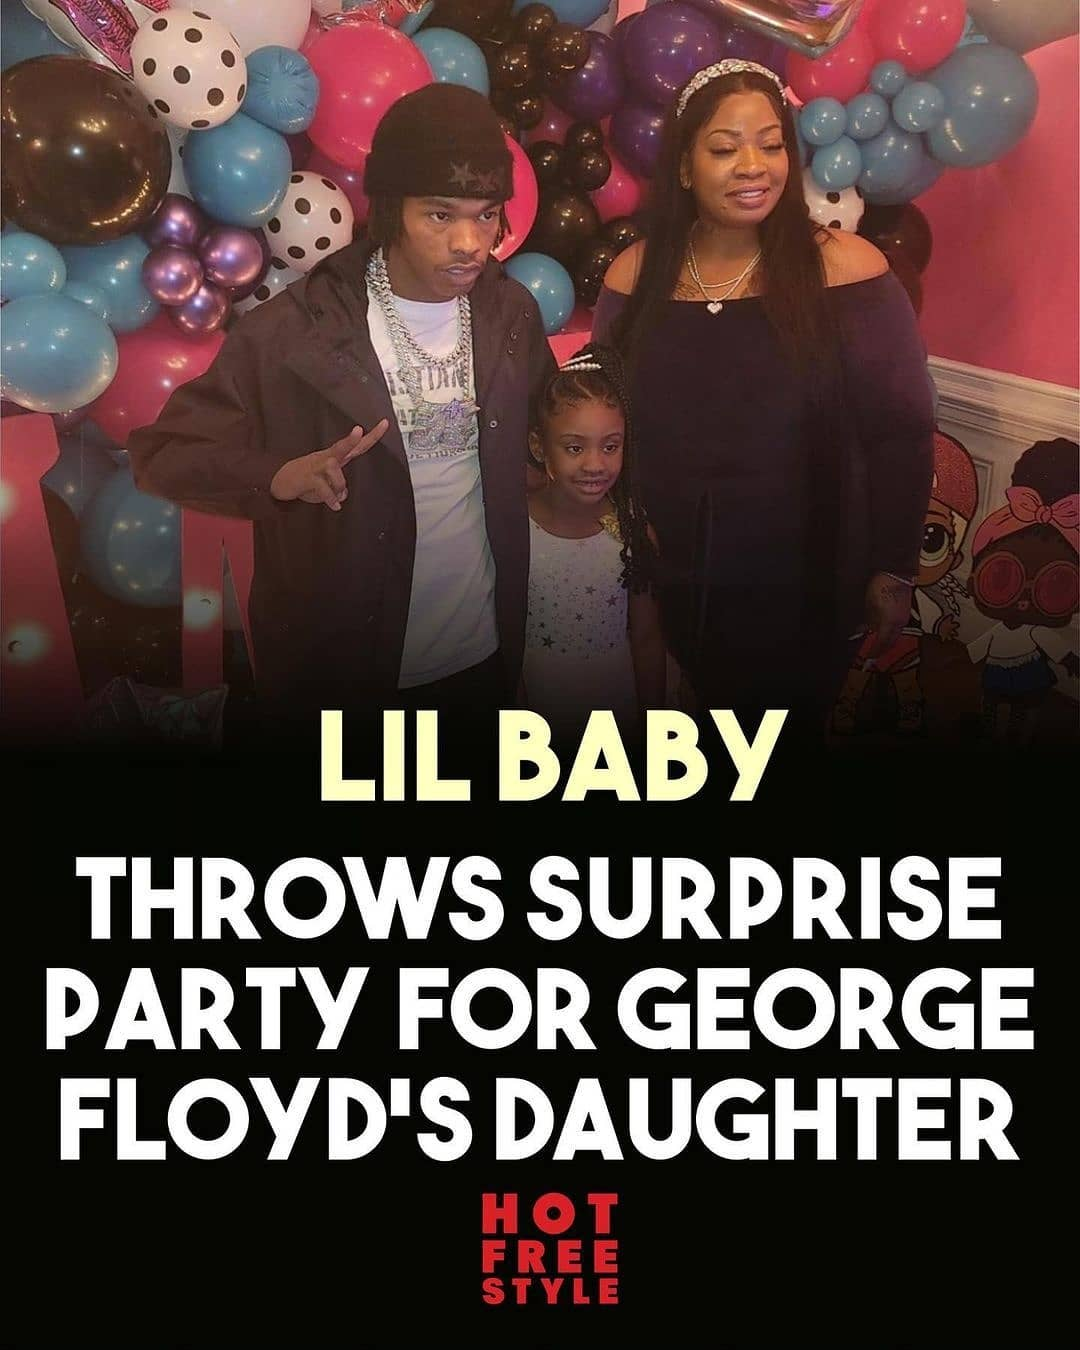 Lil Baby threw a surprise birthday party for George Floyd's daughter Gianna and covered all the expenses